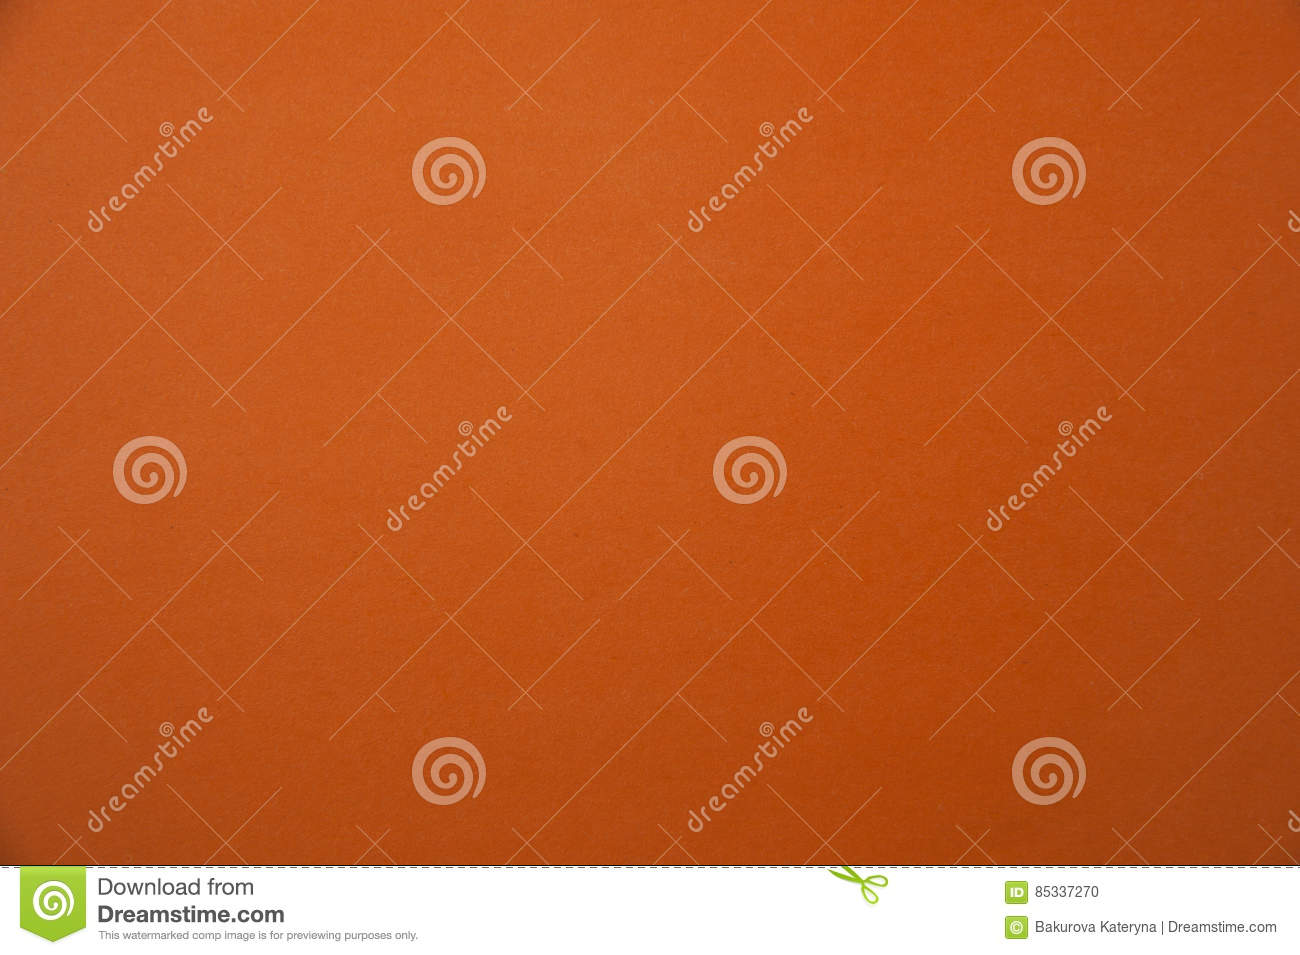 Download Light Brown Paper Texture Stock Photo Image Of Wallpaper